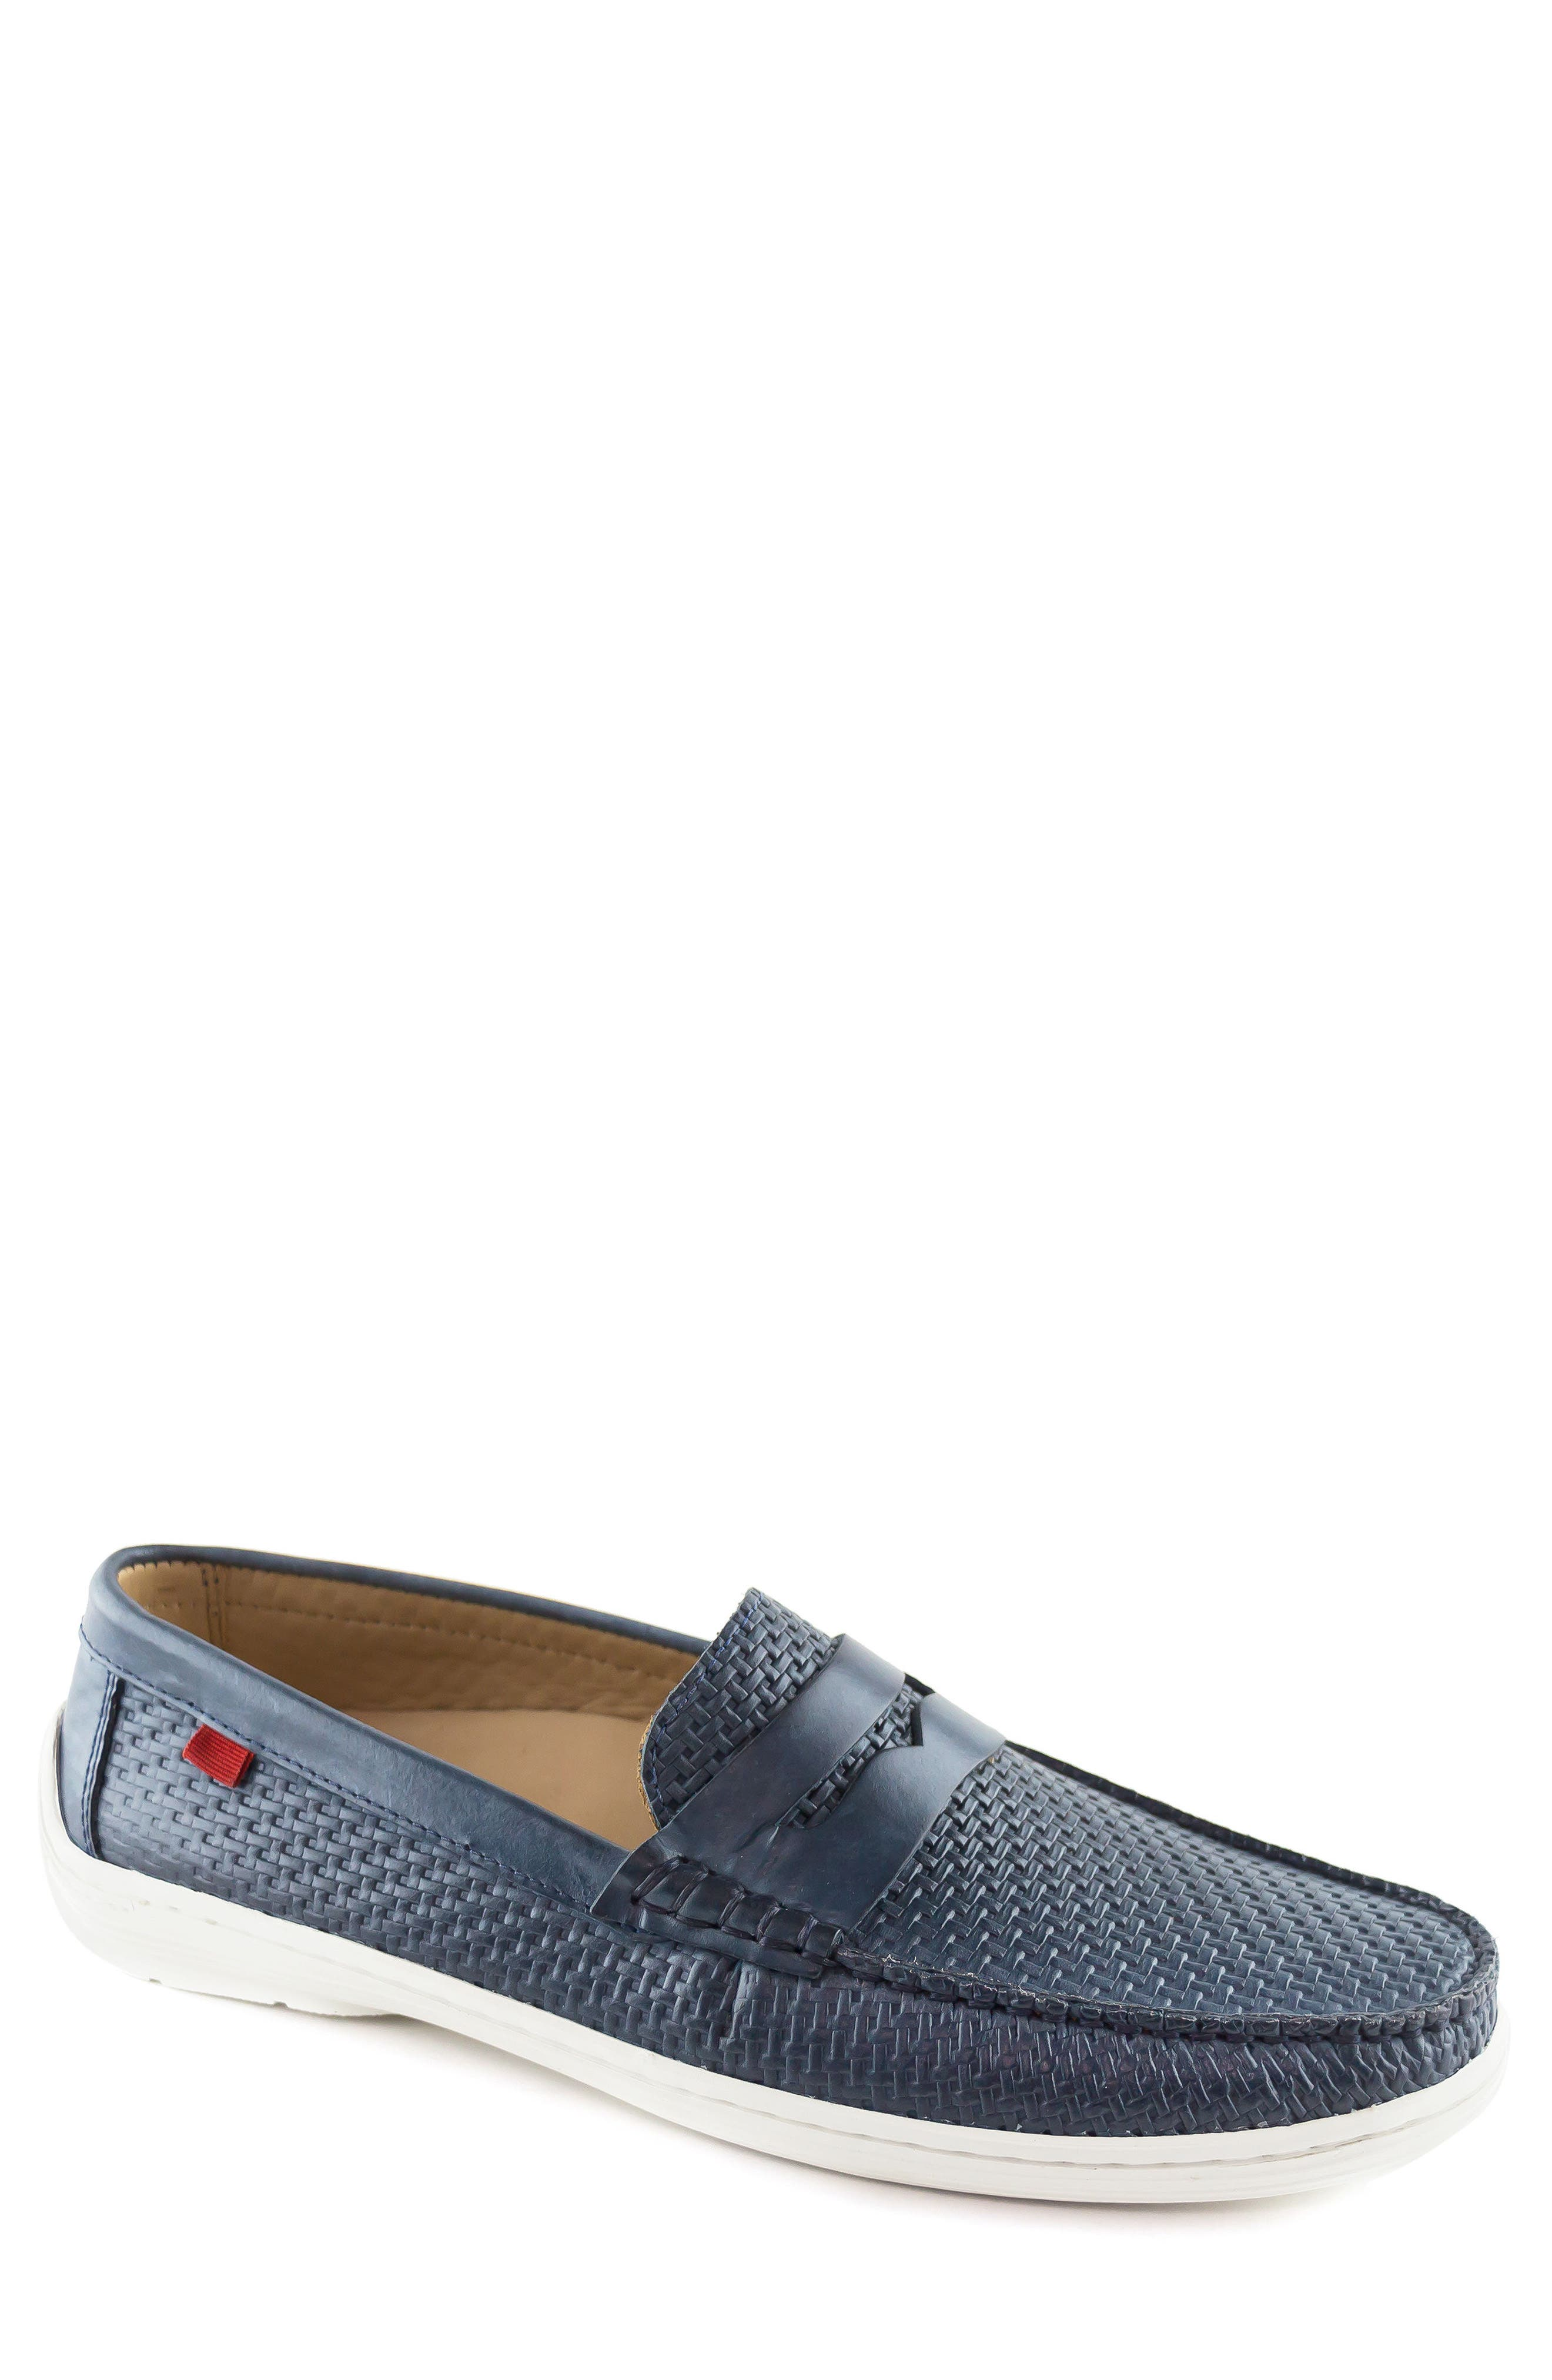 Atlantic Penny Loafer,                             Main thumbnail 1, color,                             Blue Leather